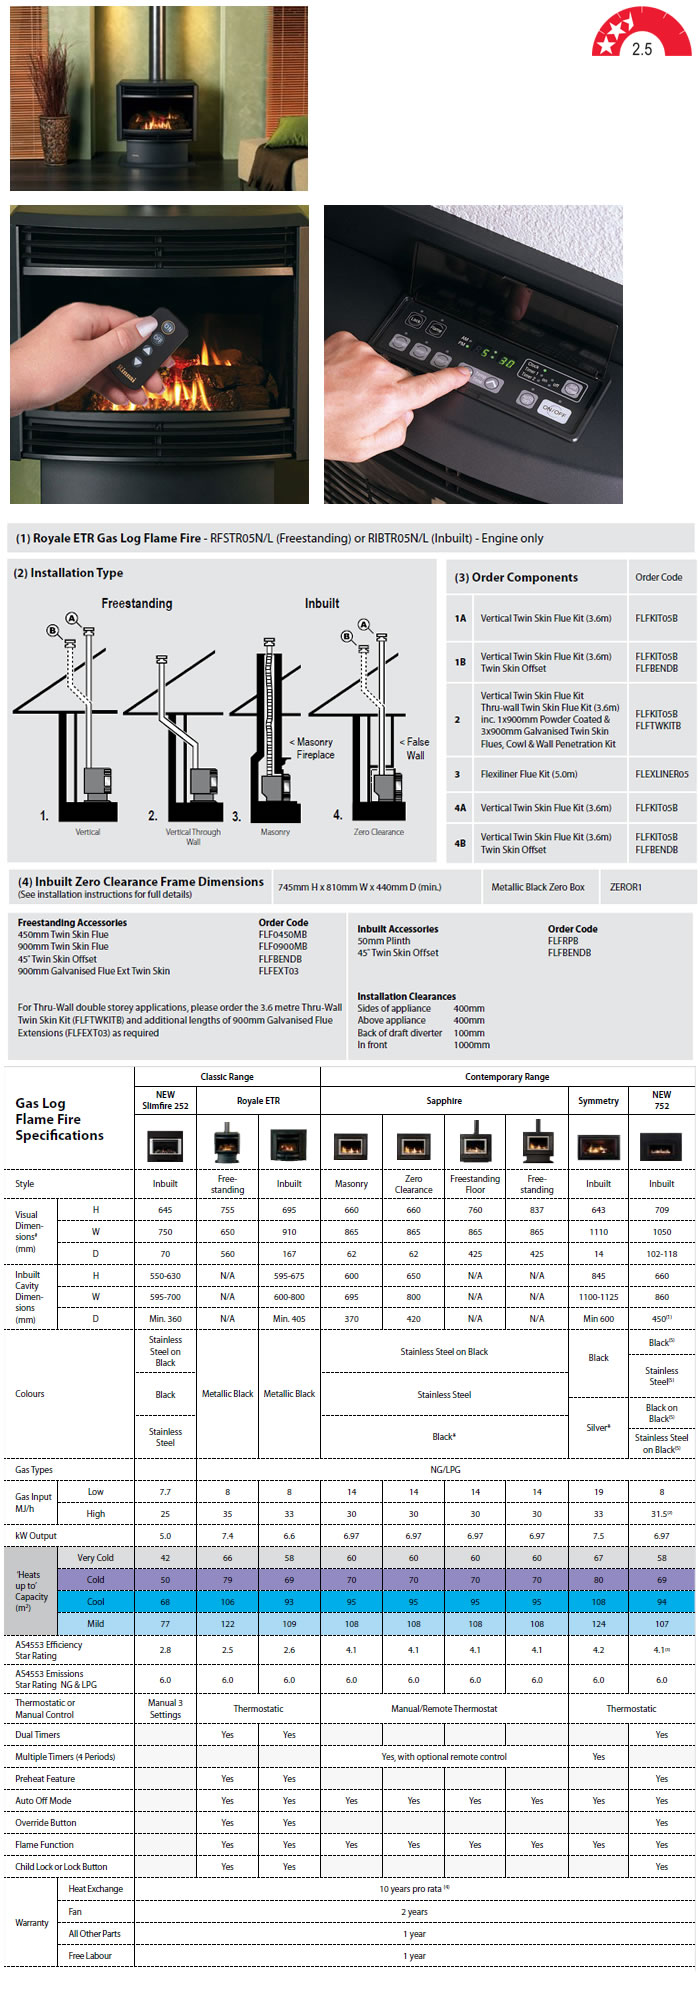 Bentons Finer Bathrooms Rinnai Royale Gas Log Flame Fire Boilers Wiring Diagram Specifications